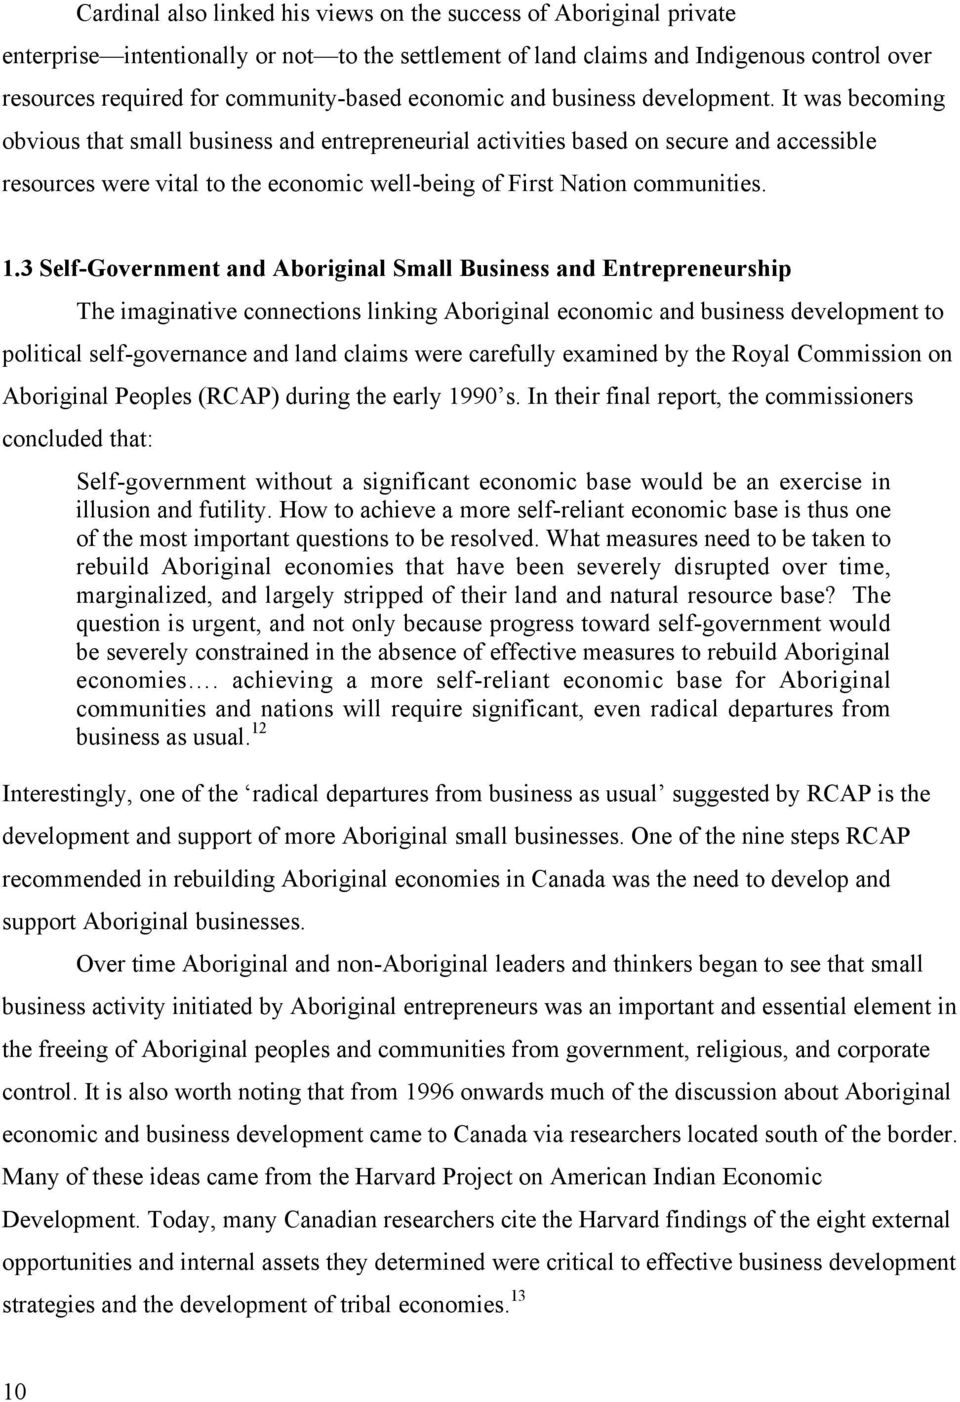 It was becoming obvious that small business and entrepreneurial activities based on secure and accessible resources were vital to the economic well-being of First Nation communities. 1.